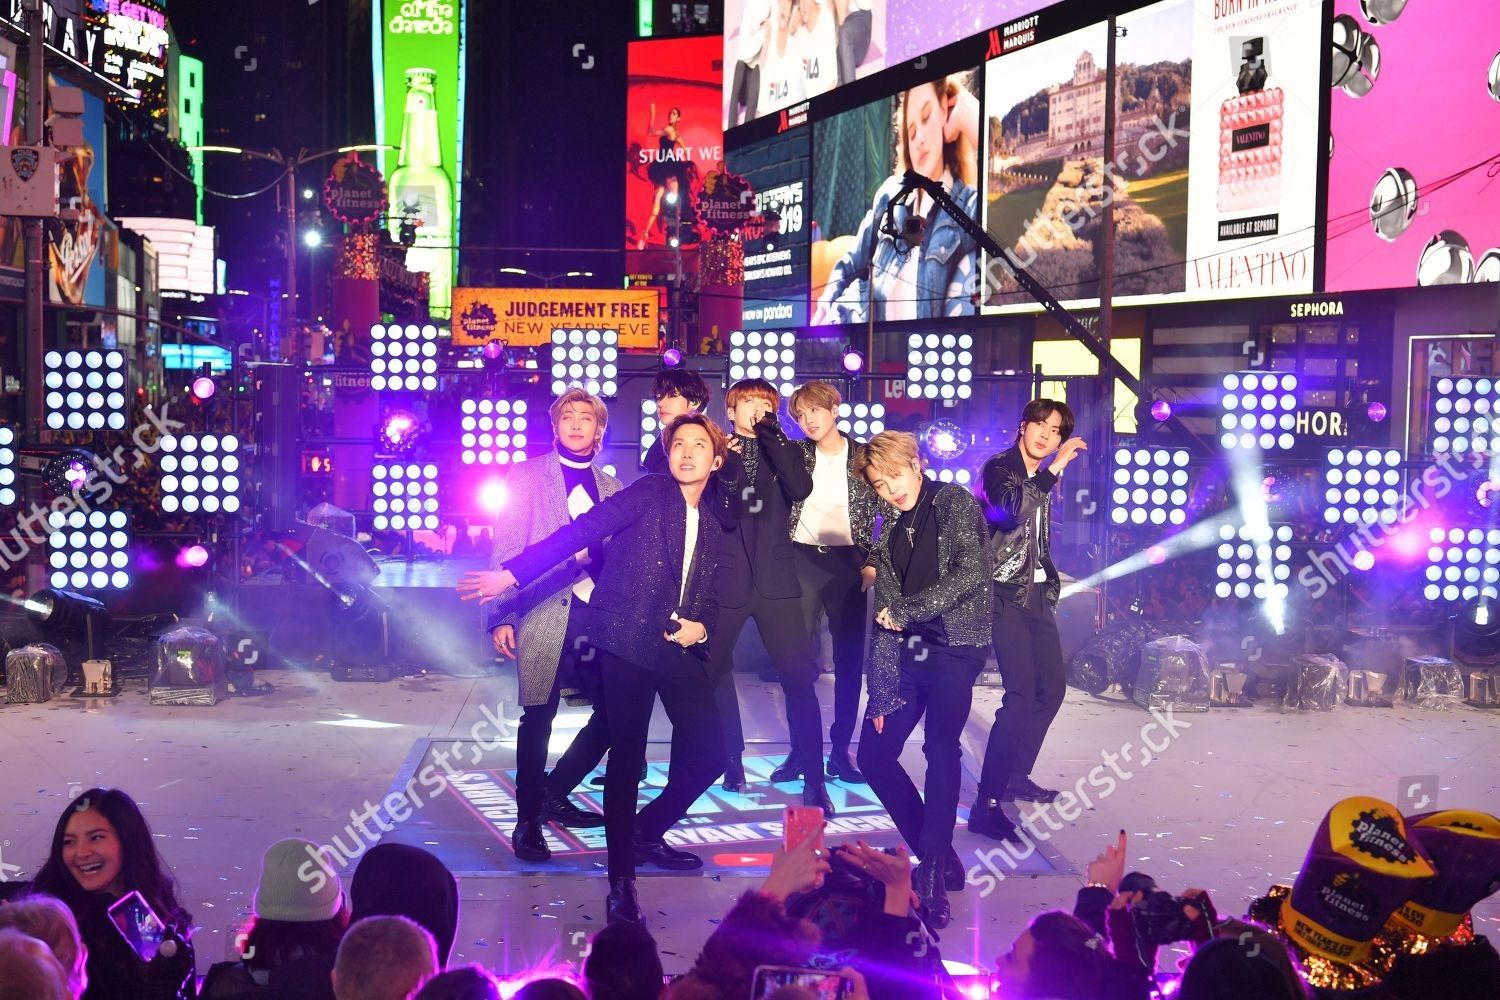 200101 Times Square New Year's Eve 2020 Celebration in